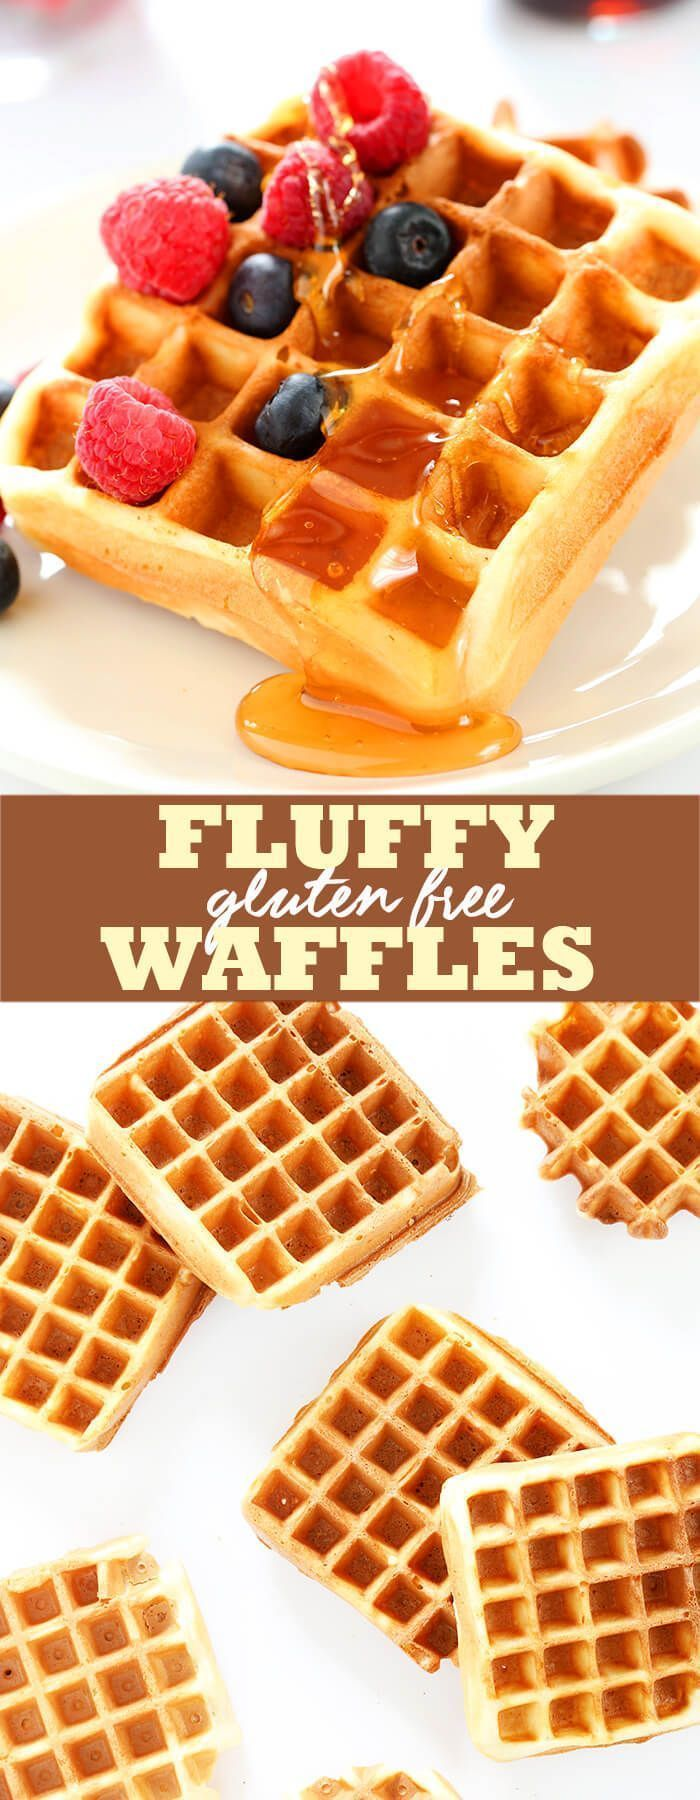 The perfect fluffy gluten free waffles made with yogurt and just a touch of sugar, with a lightly crisp outside. Enjoy this easy recipe fresh, or frozen! #glutenfreerecipes #glutenfree #breakfastrecipe